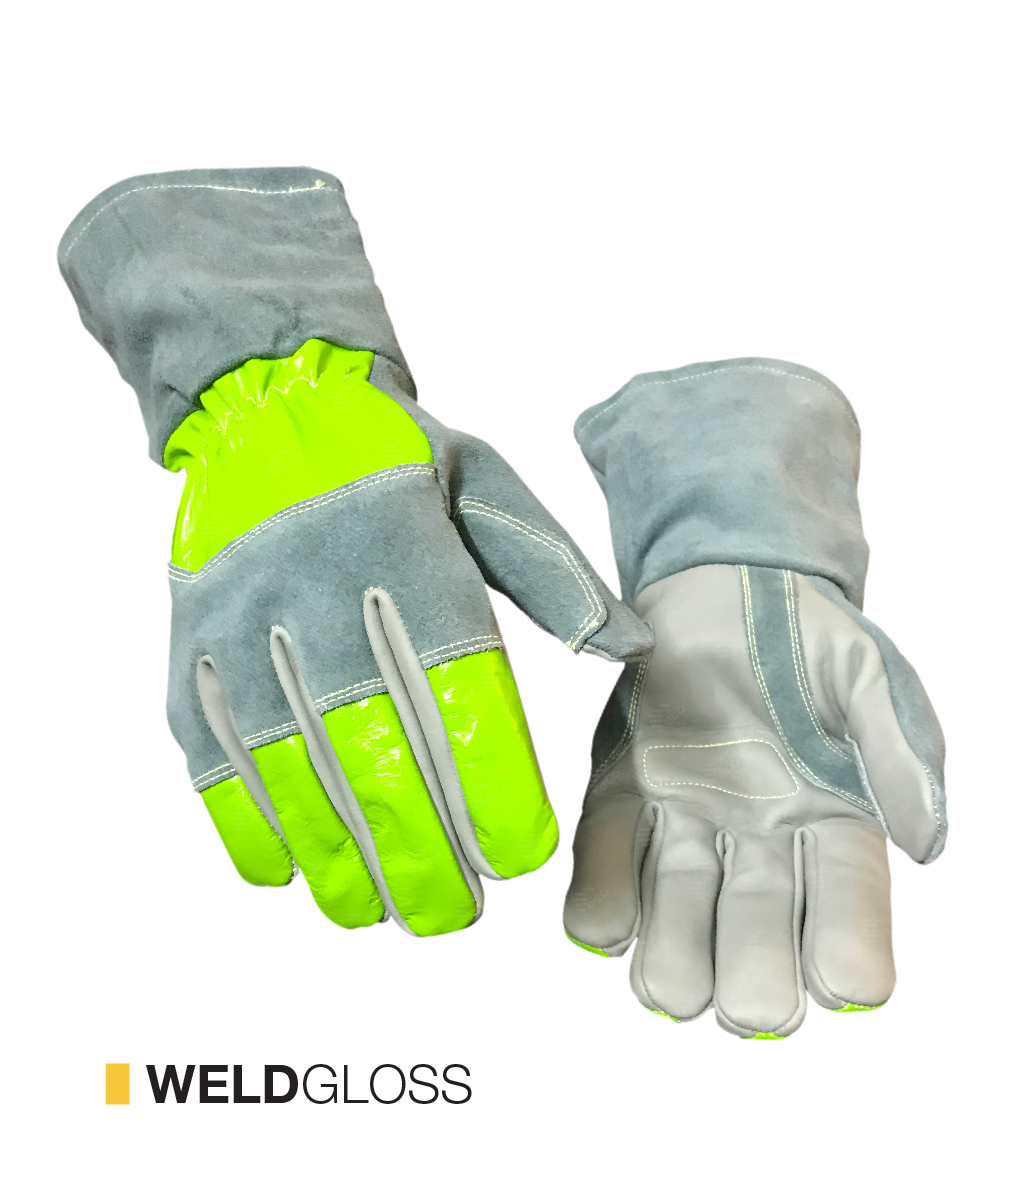 WELDGLOSS cut-resistant gloves by elite leather